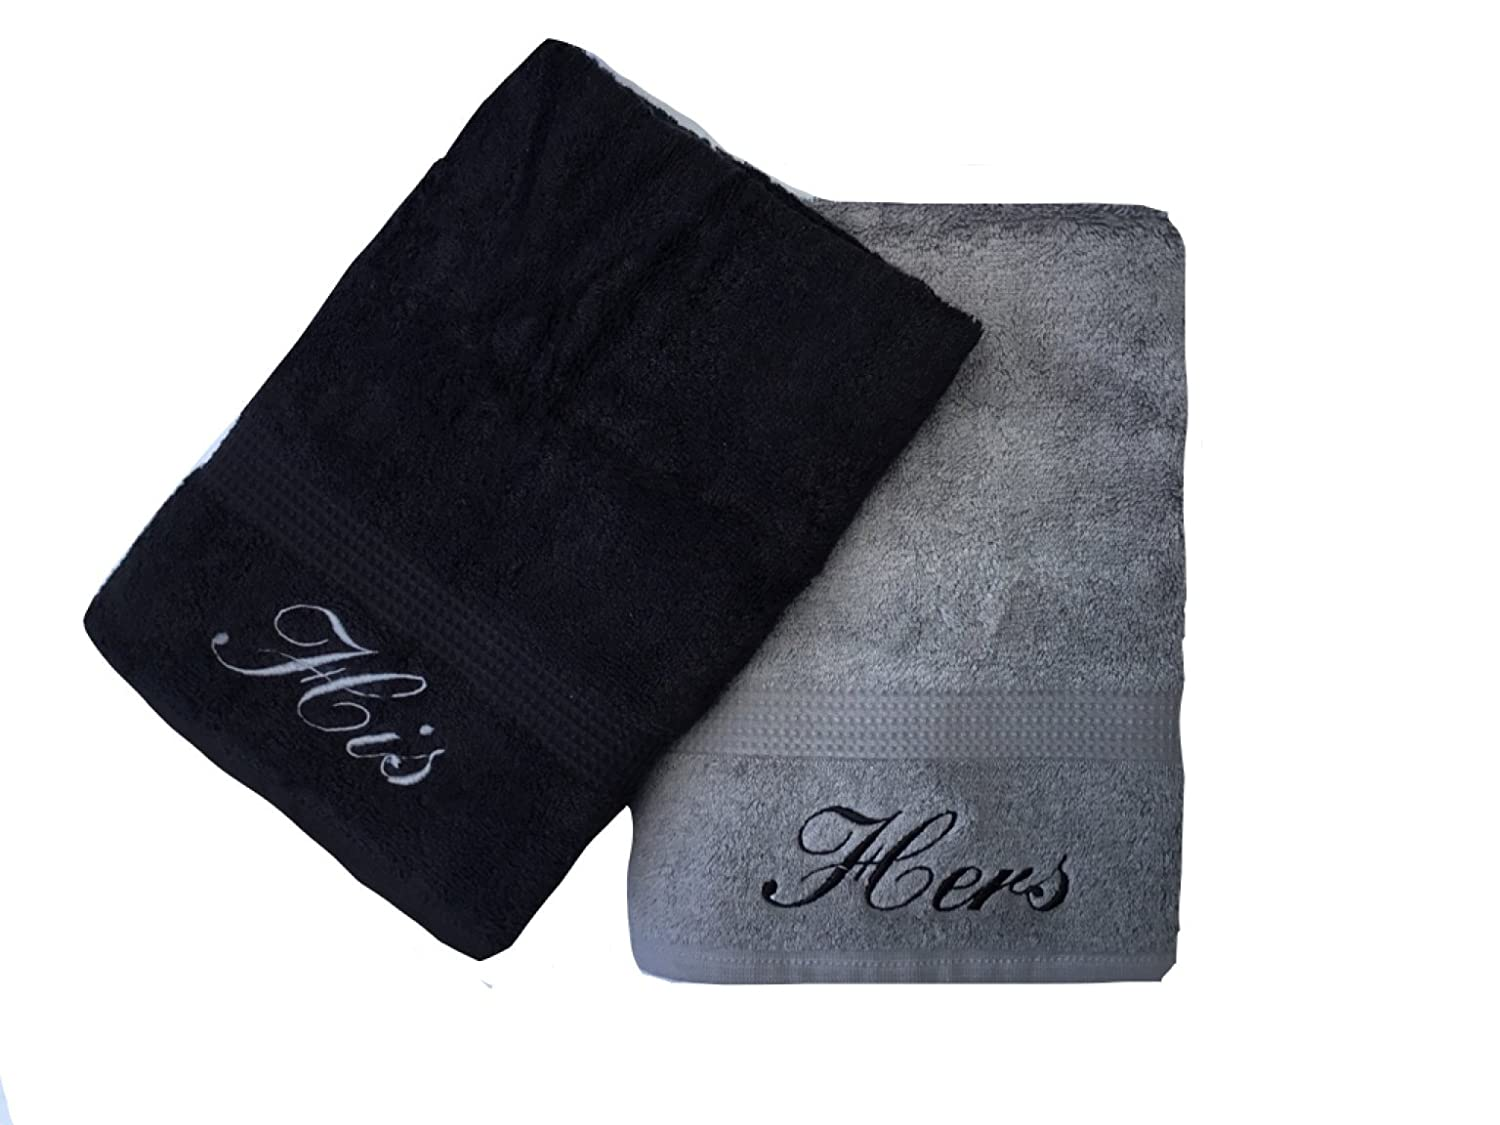 Embroidered His & Hers Black and Grey Hand Towels Pair Niche Embroidery